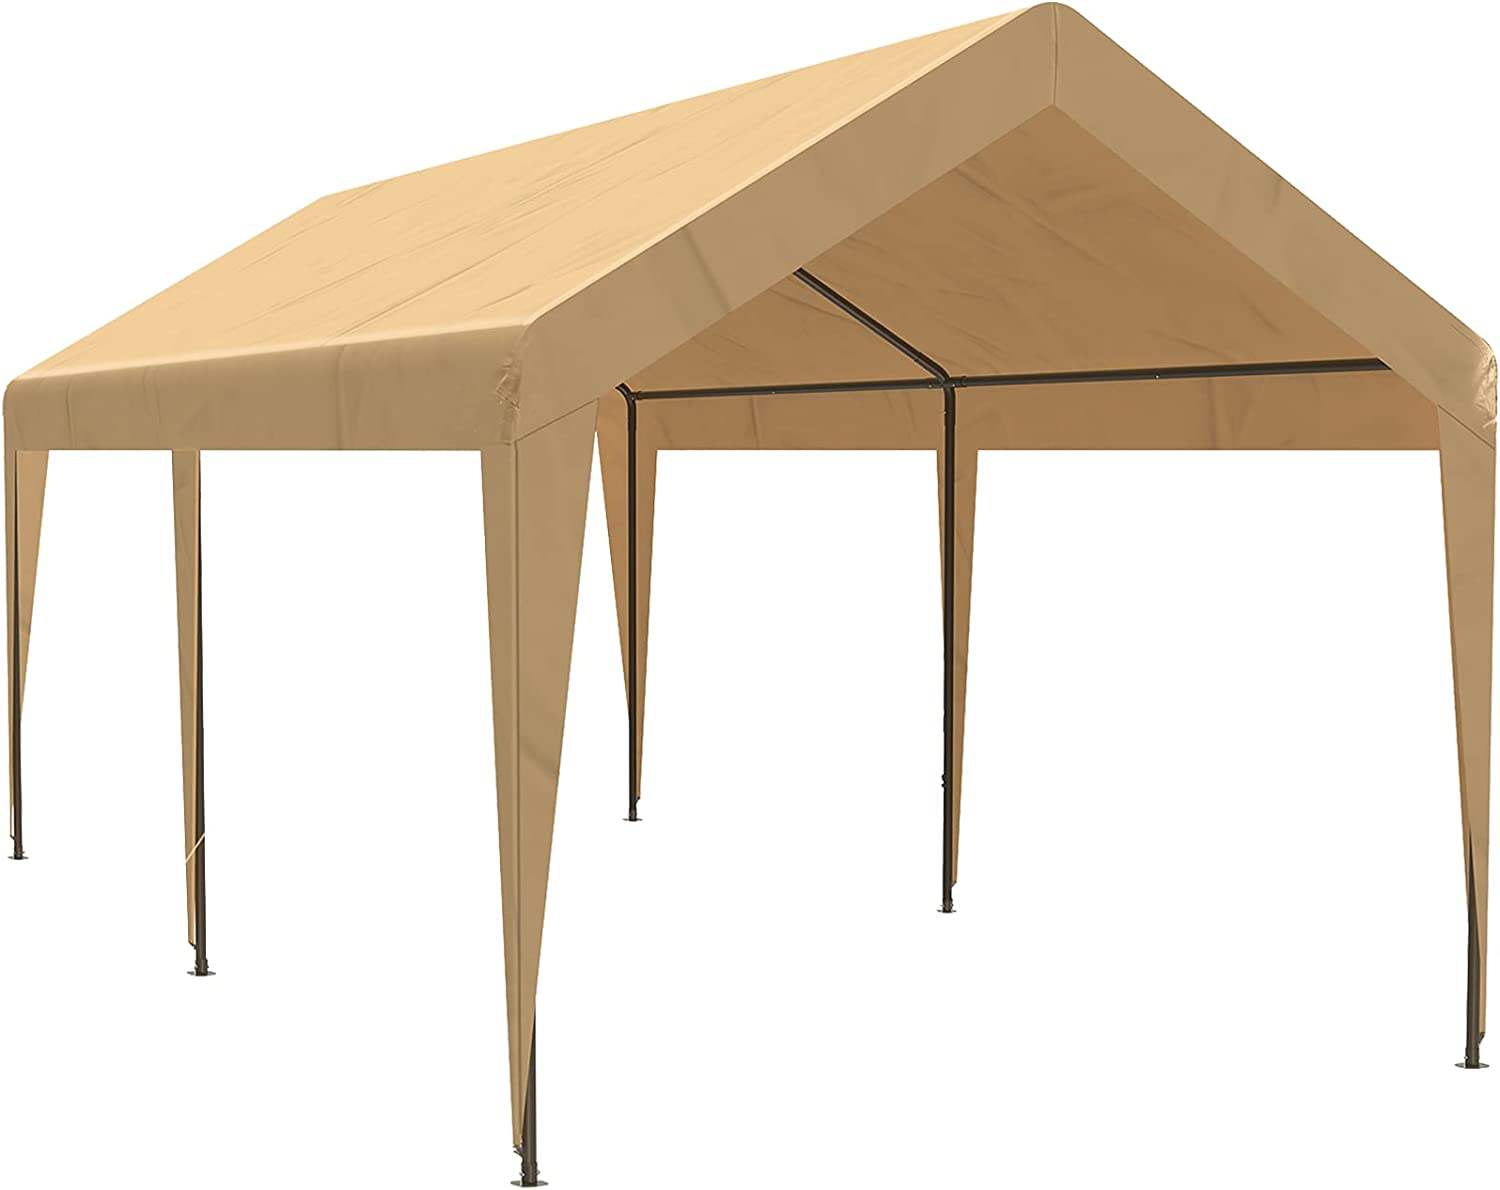 10x20 ft Heavy Duty Manufacturer OFFicial shop Carport Car Canopy In a popularity Garage Portable Shel Boat